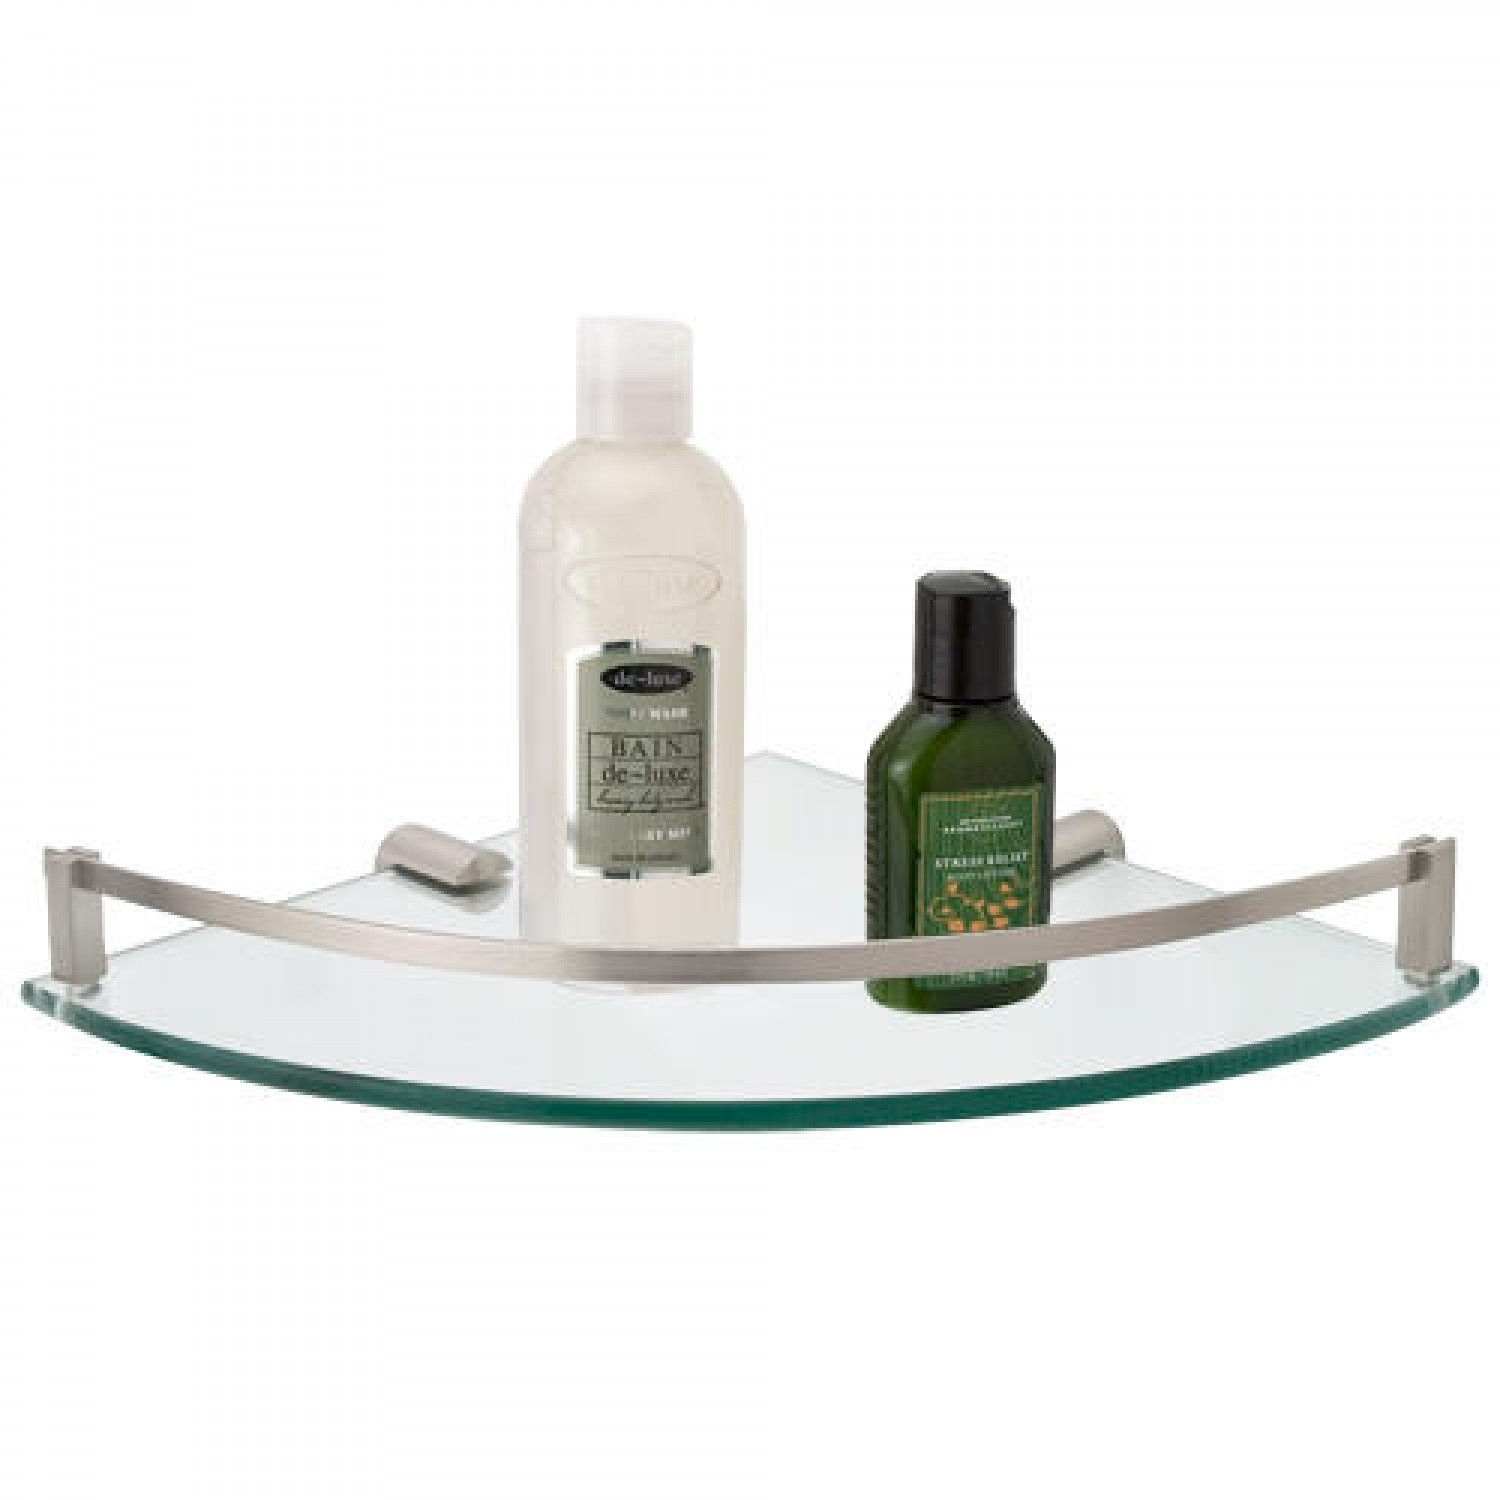 Engel Tempered Glass Corner Shelf Bathroom Inside Glass Corner Shelves (#5 of 12)